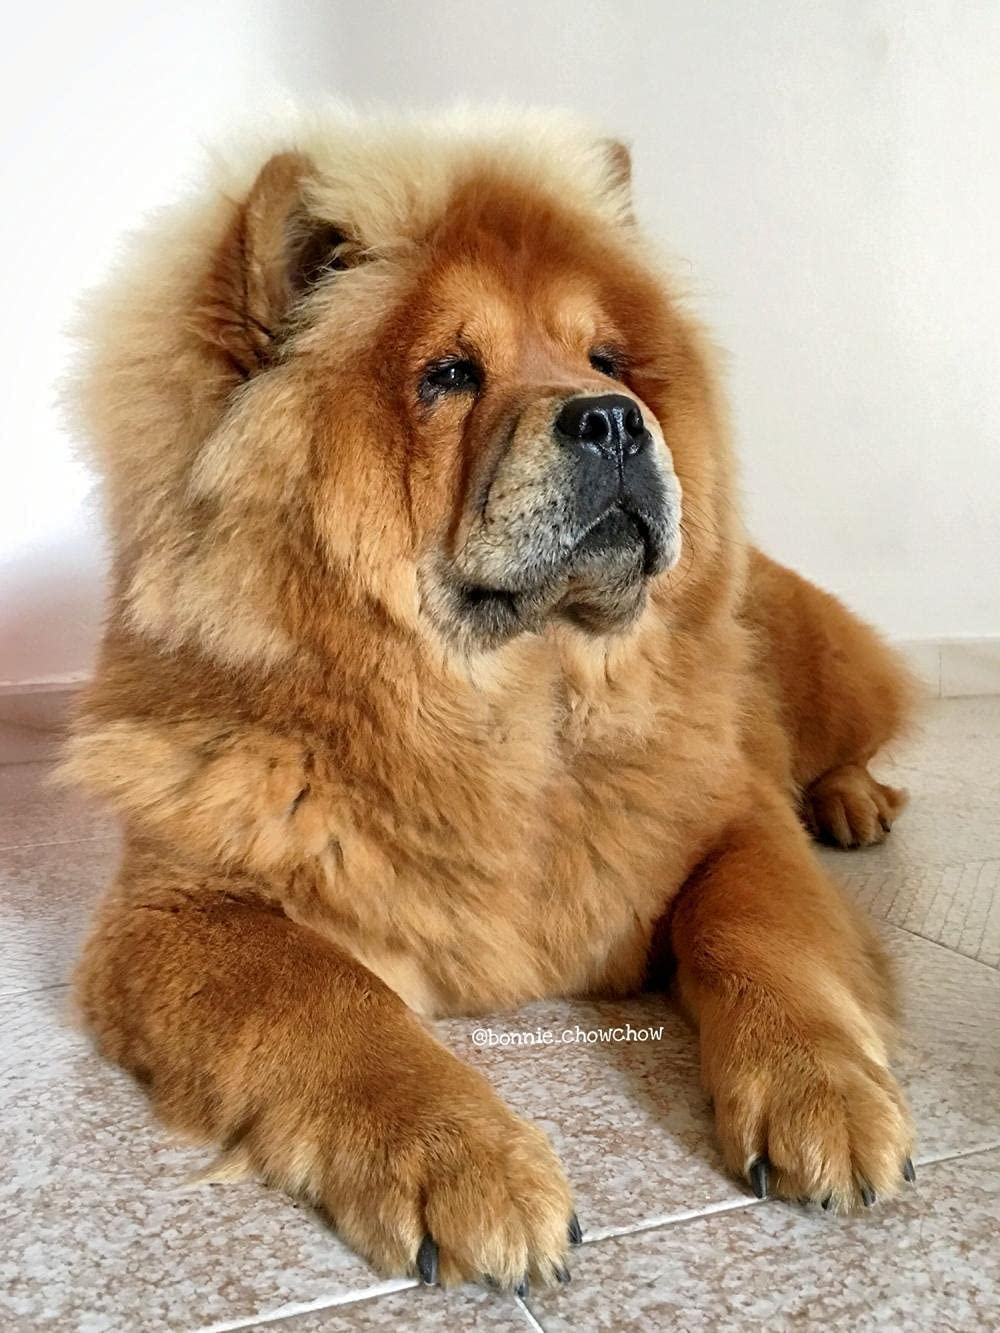 Cute Chow Pet Dog 67% OFF of fixed price Animal 5D Kit Painting Adults Diamond Max 67% OFF for